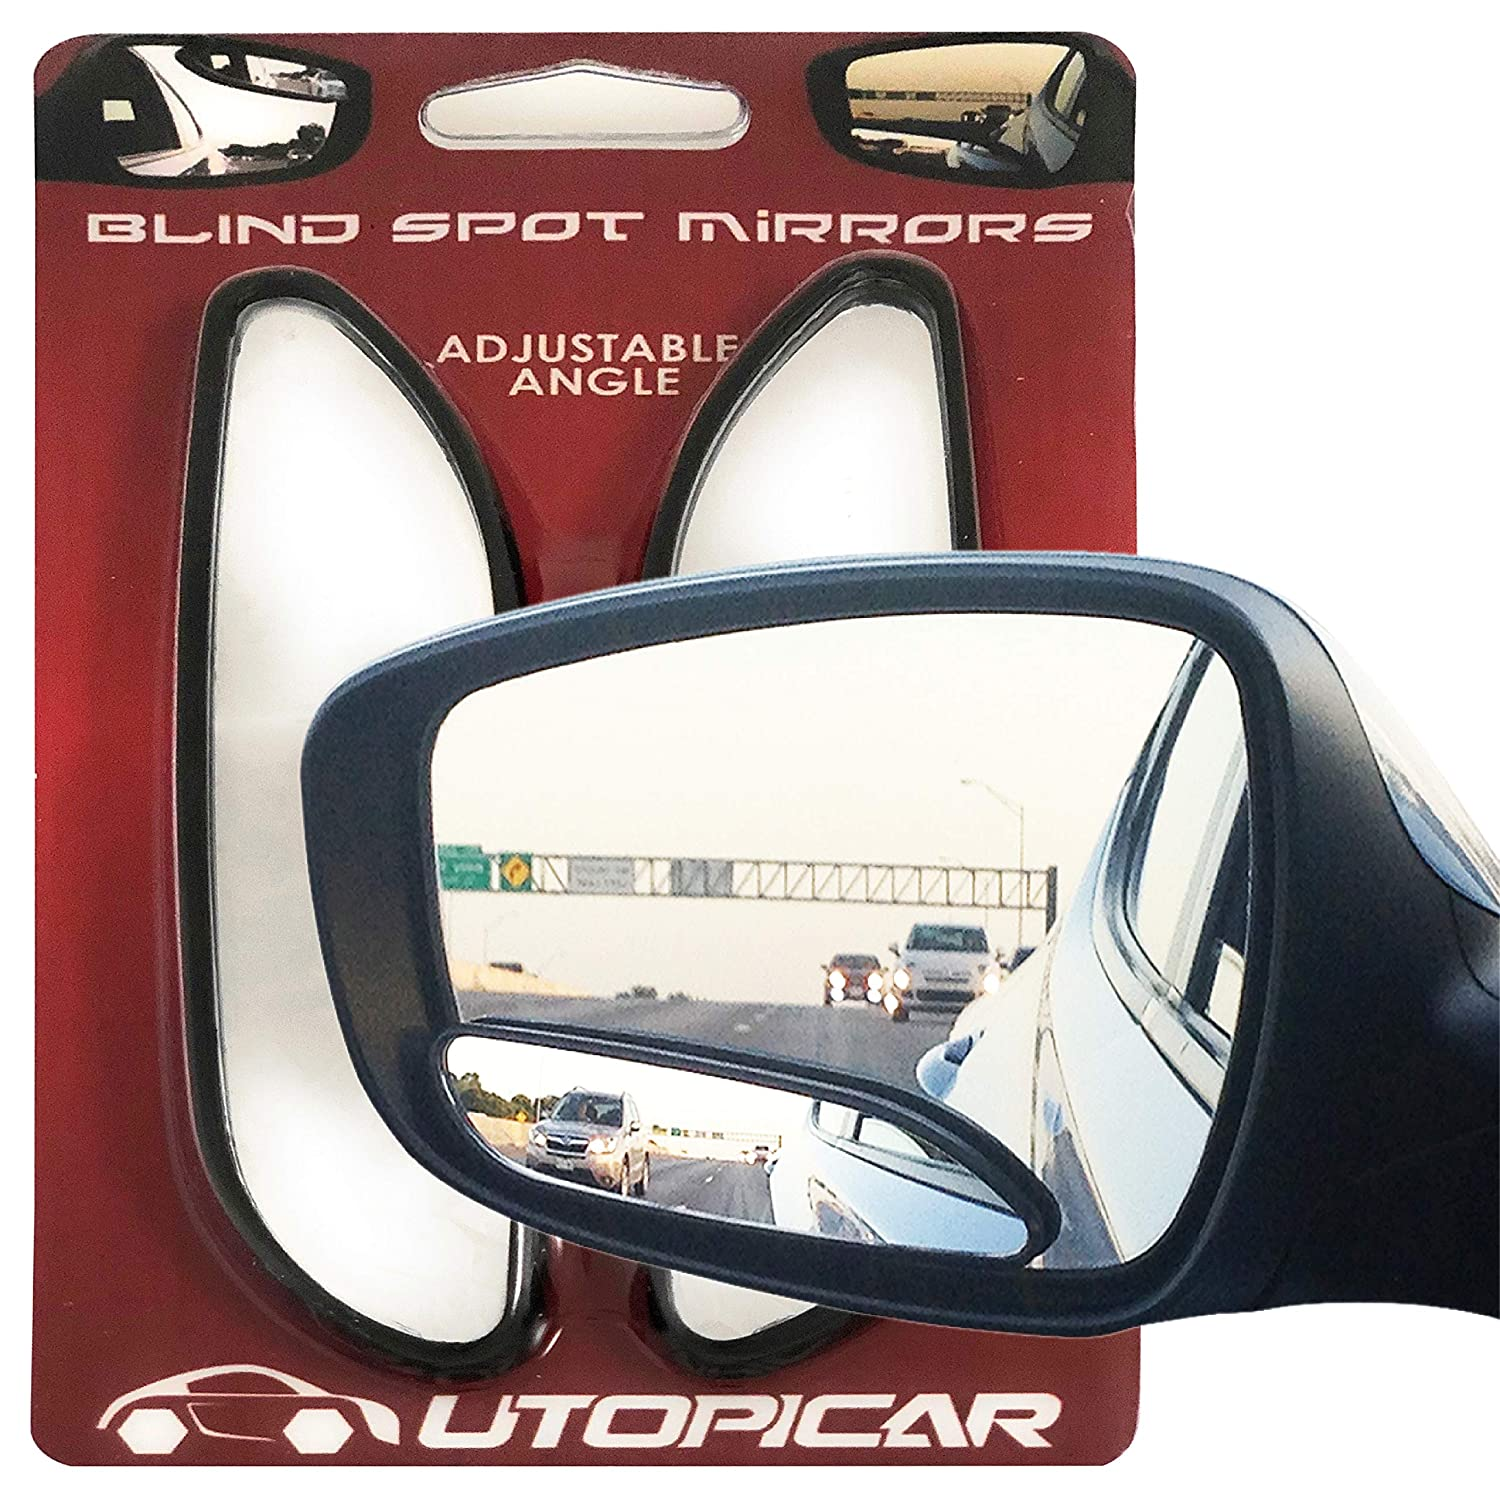 2 pack long design Car Mirror for blind side by Utopicar for traffic safety stick-on Blind Spot Mirrors Door mirrors for great rear view!